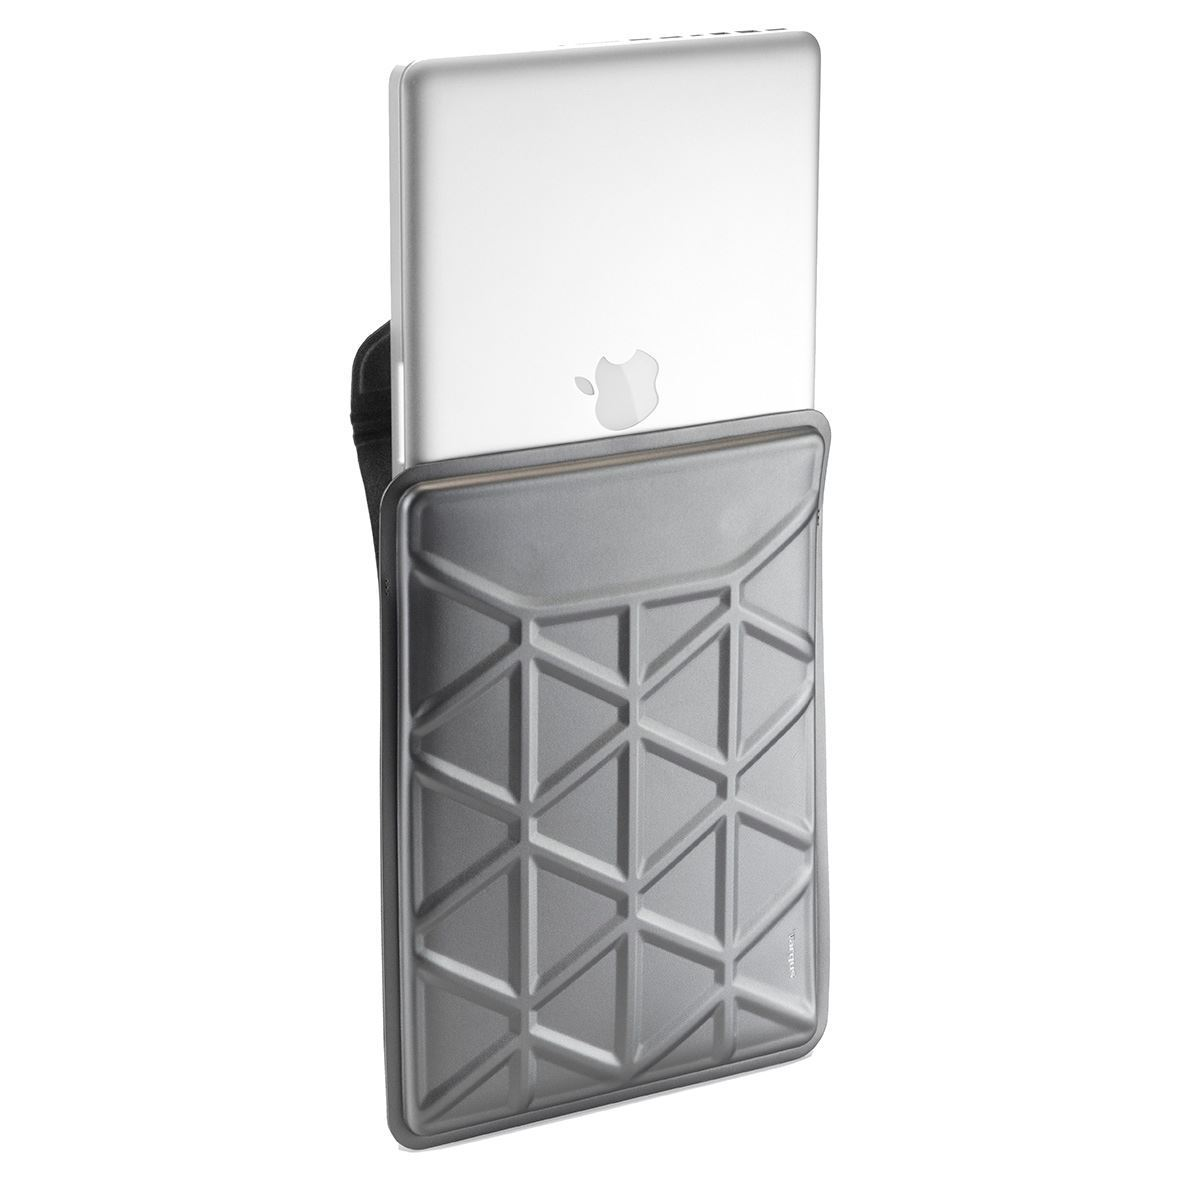 Pro tek 13 3 inch laptop sleeve silver for Housse macbook 12